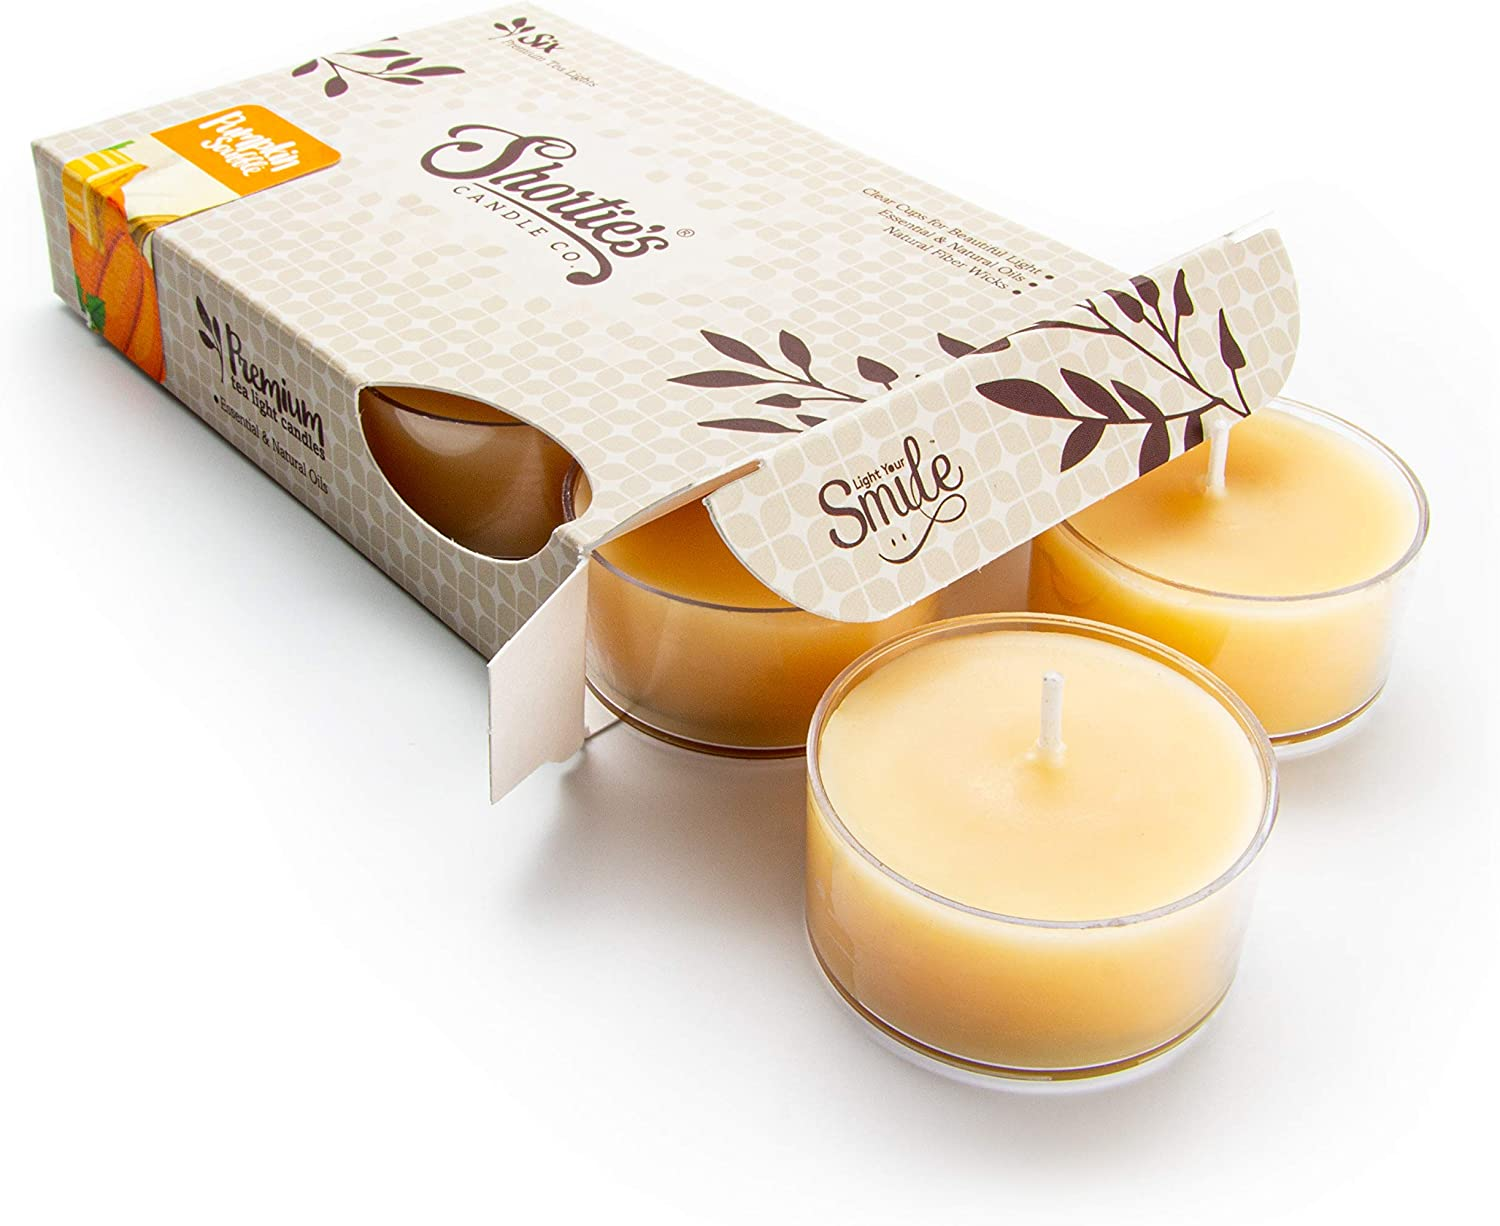 Pumpkin Souffle Tealight Candles - with Ranking TOP16 O Highly Kansas City Mall Scented Natural